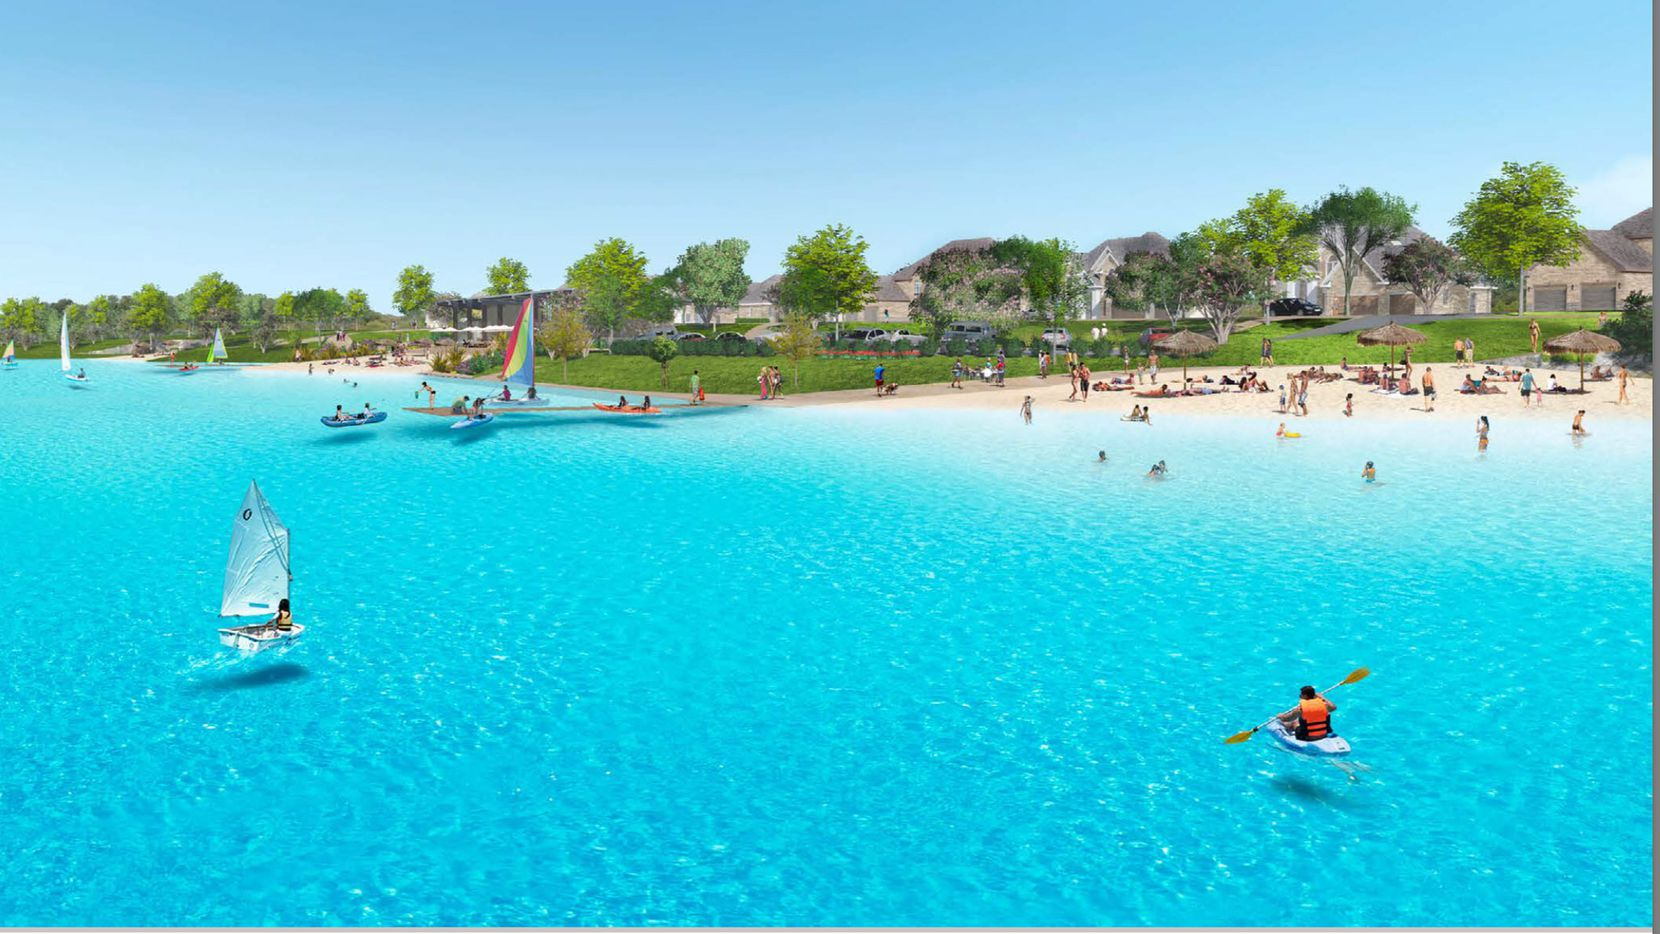 A Crystal Lagoons water feature is under construction in Prosper's Windsong Ranch development north of Dallas.